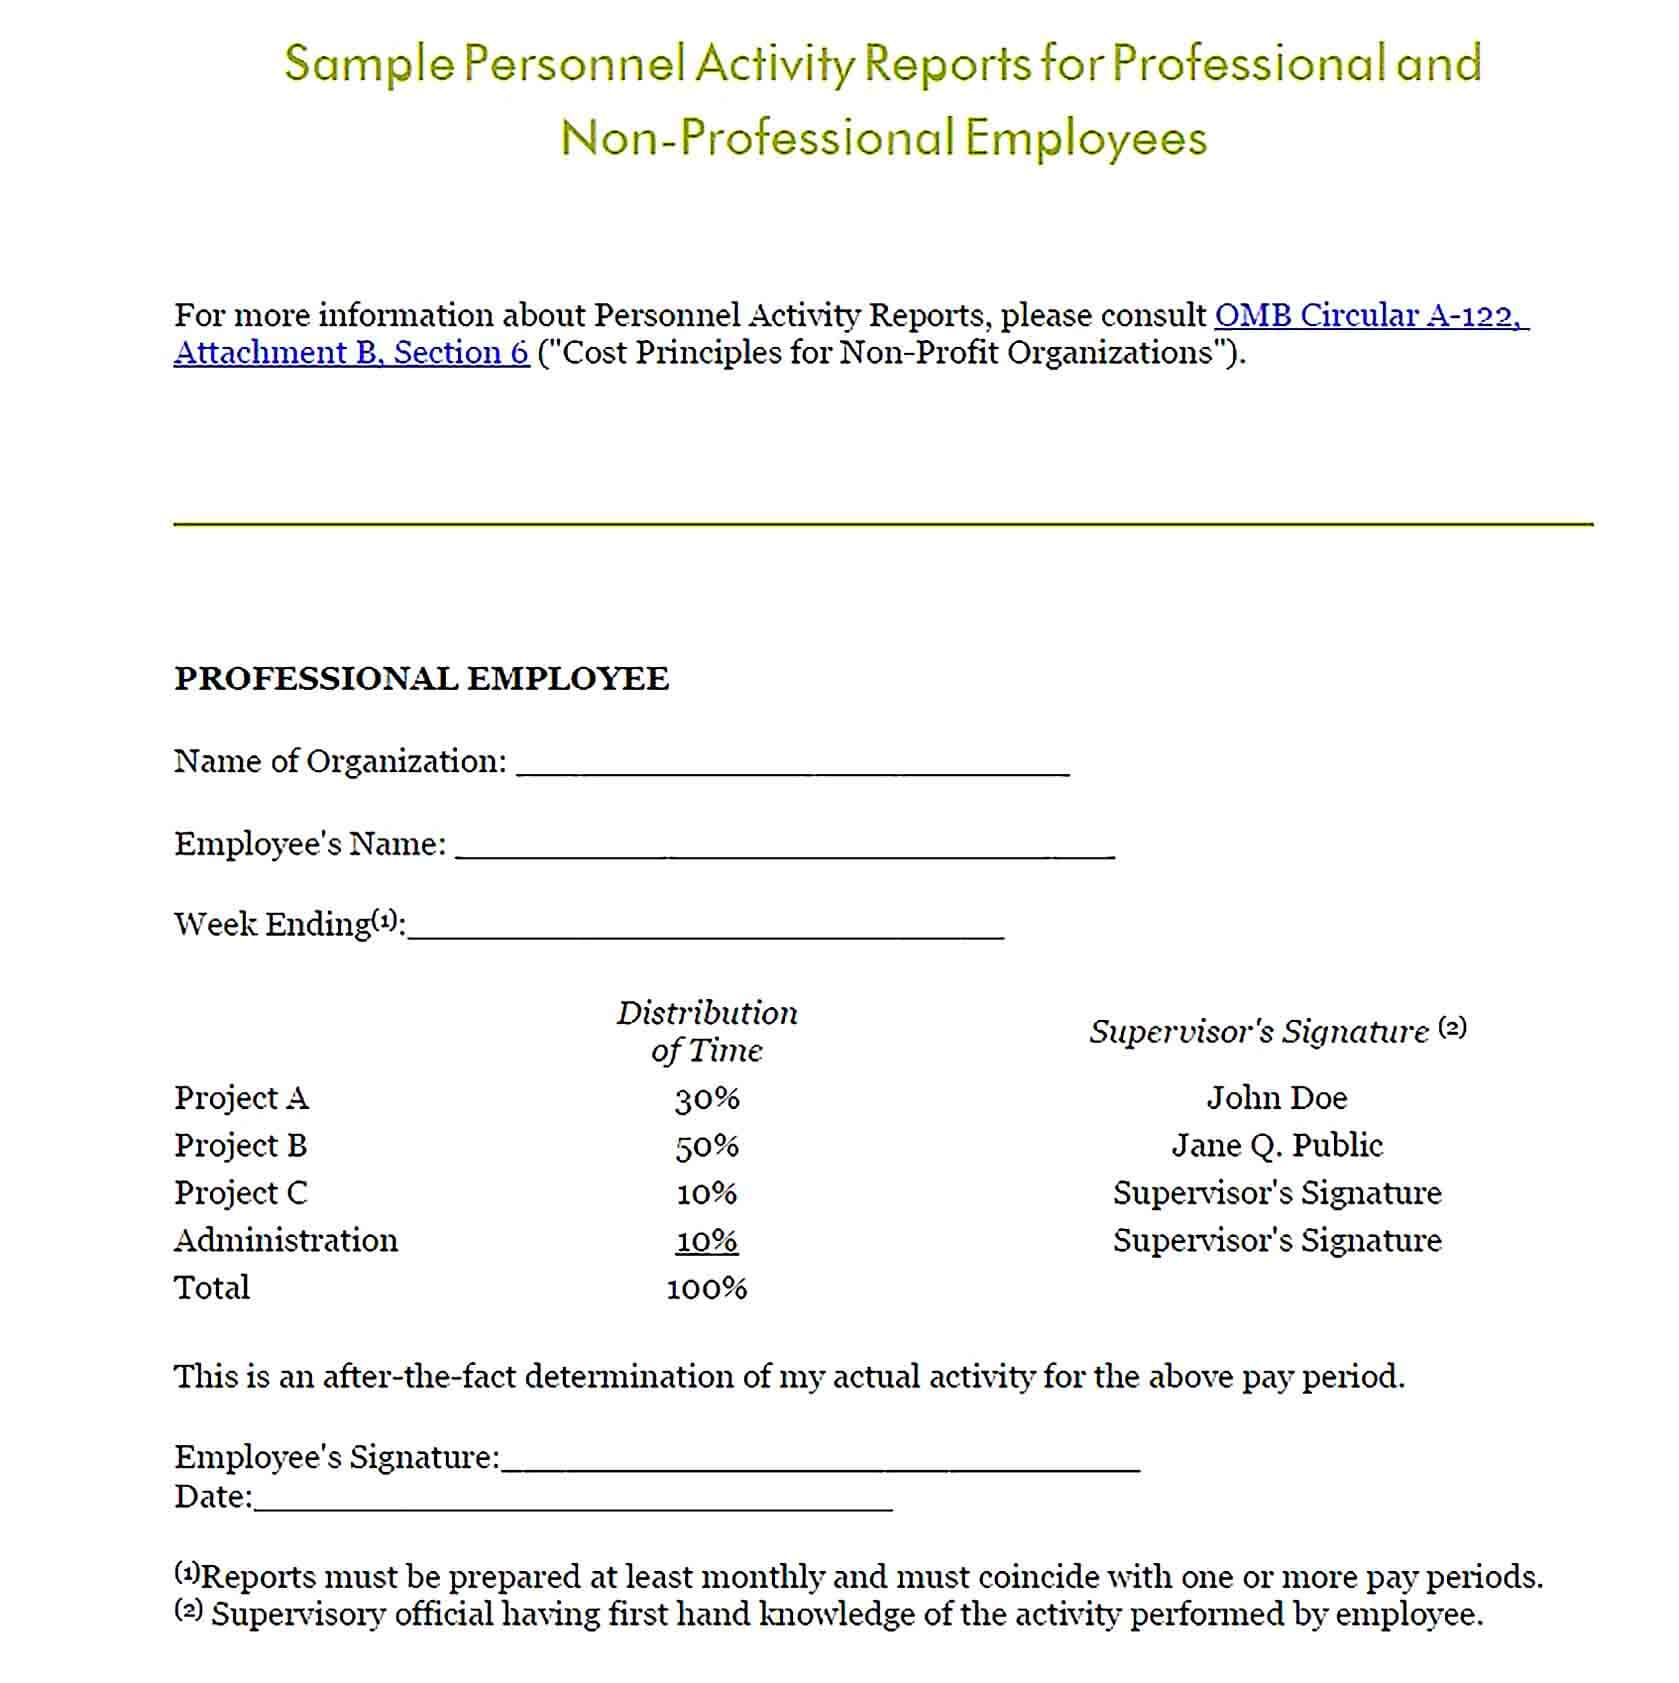 Sample Personnel Activity Report